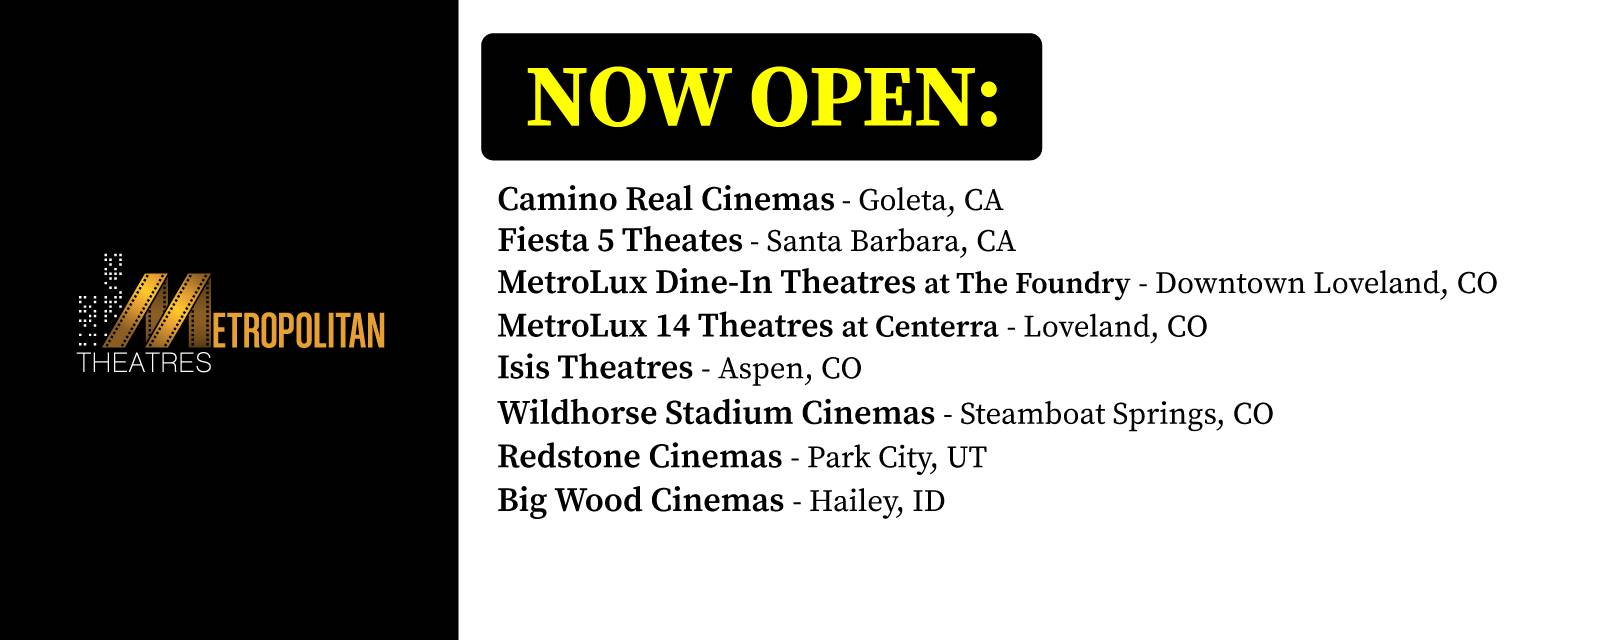 Select Theatres Open image